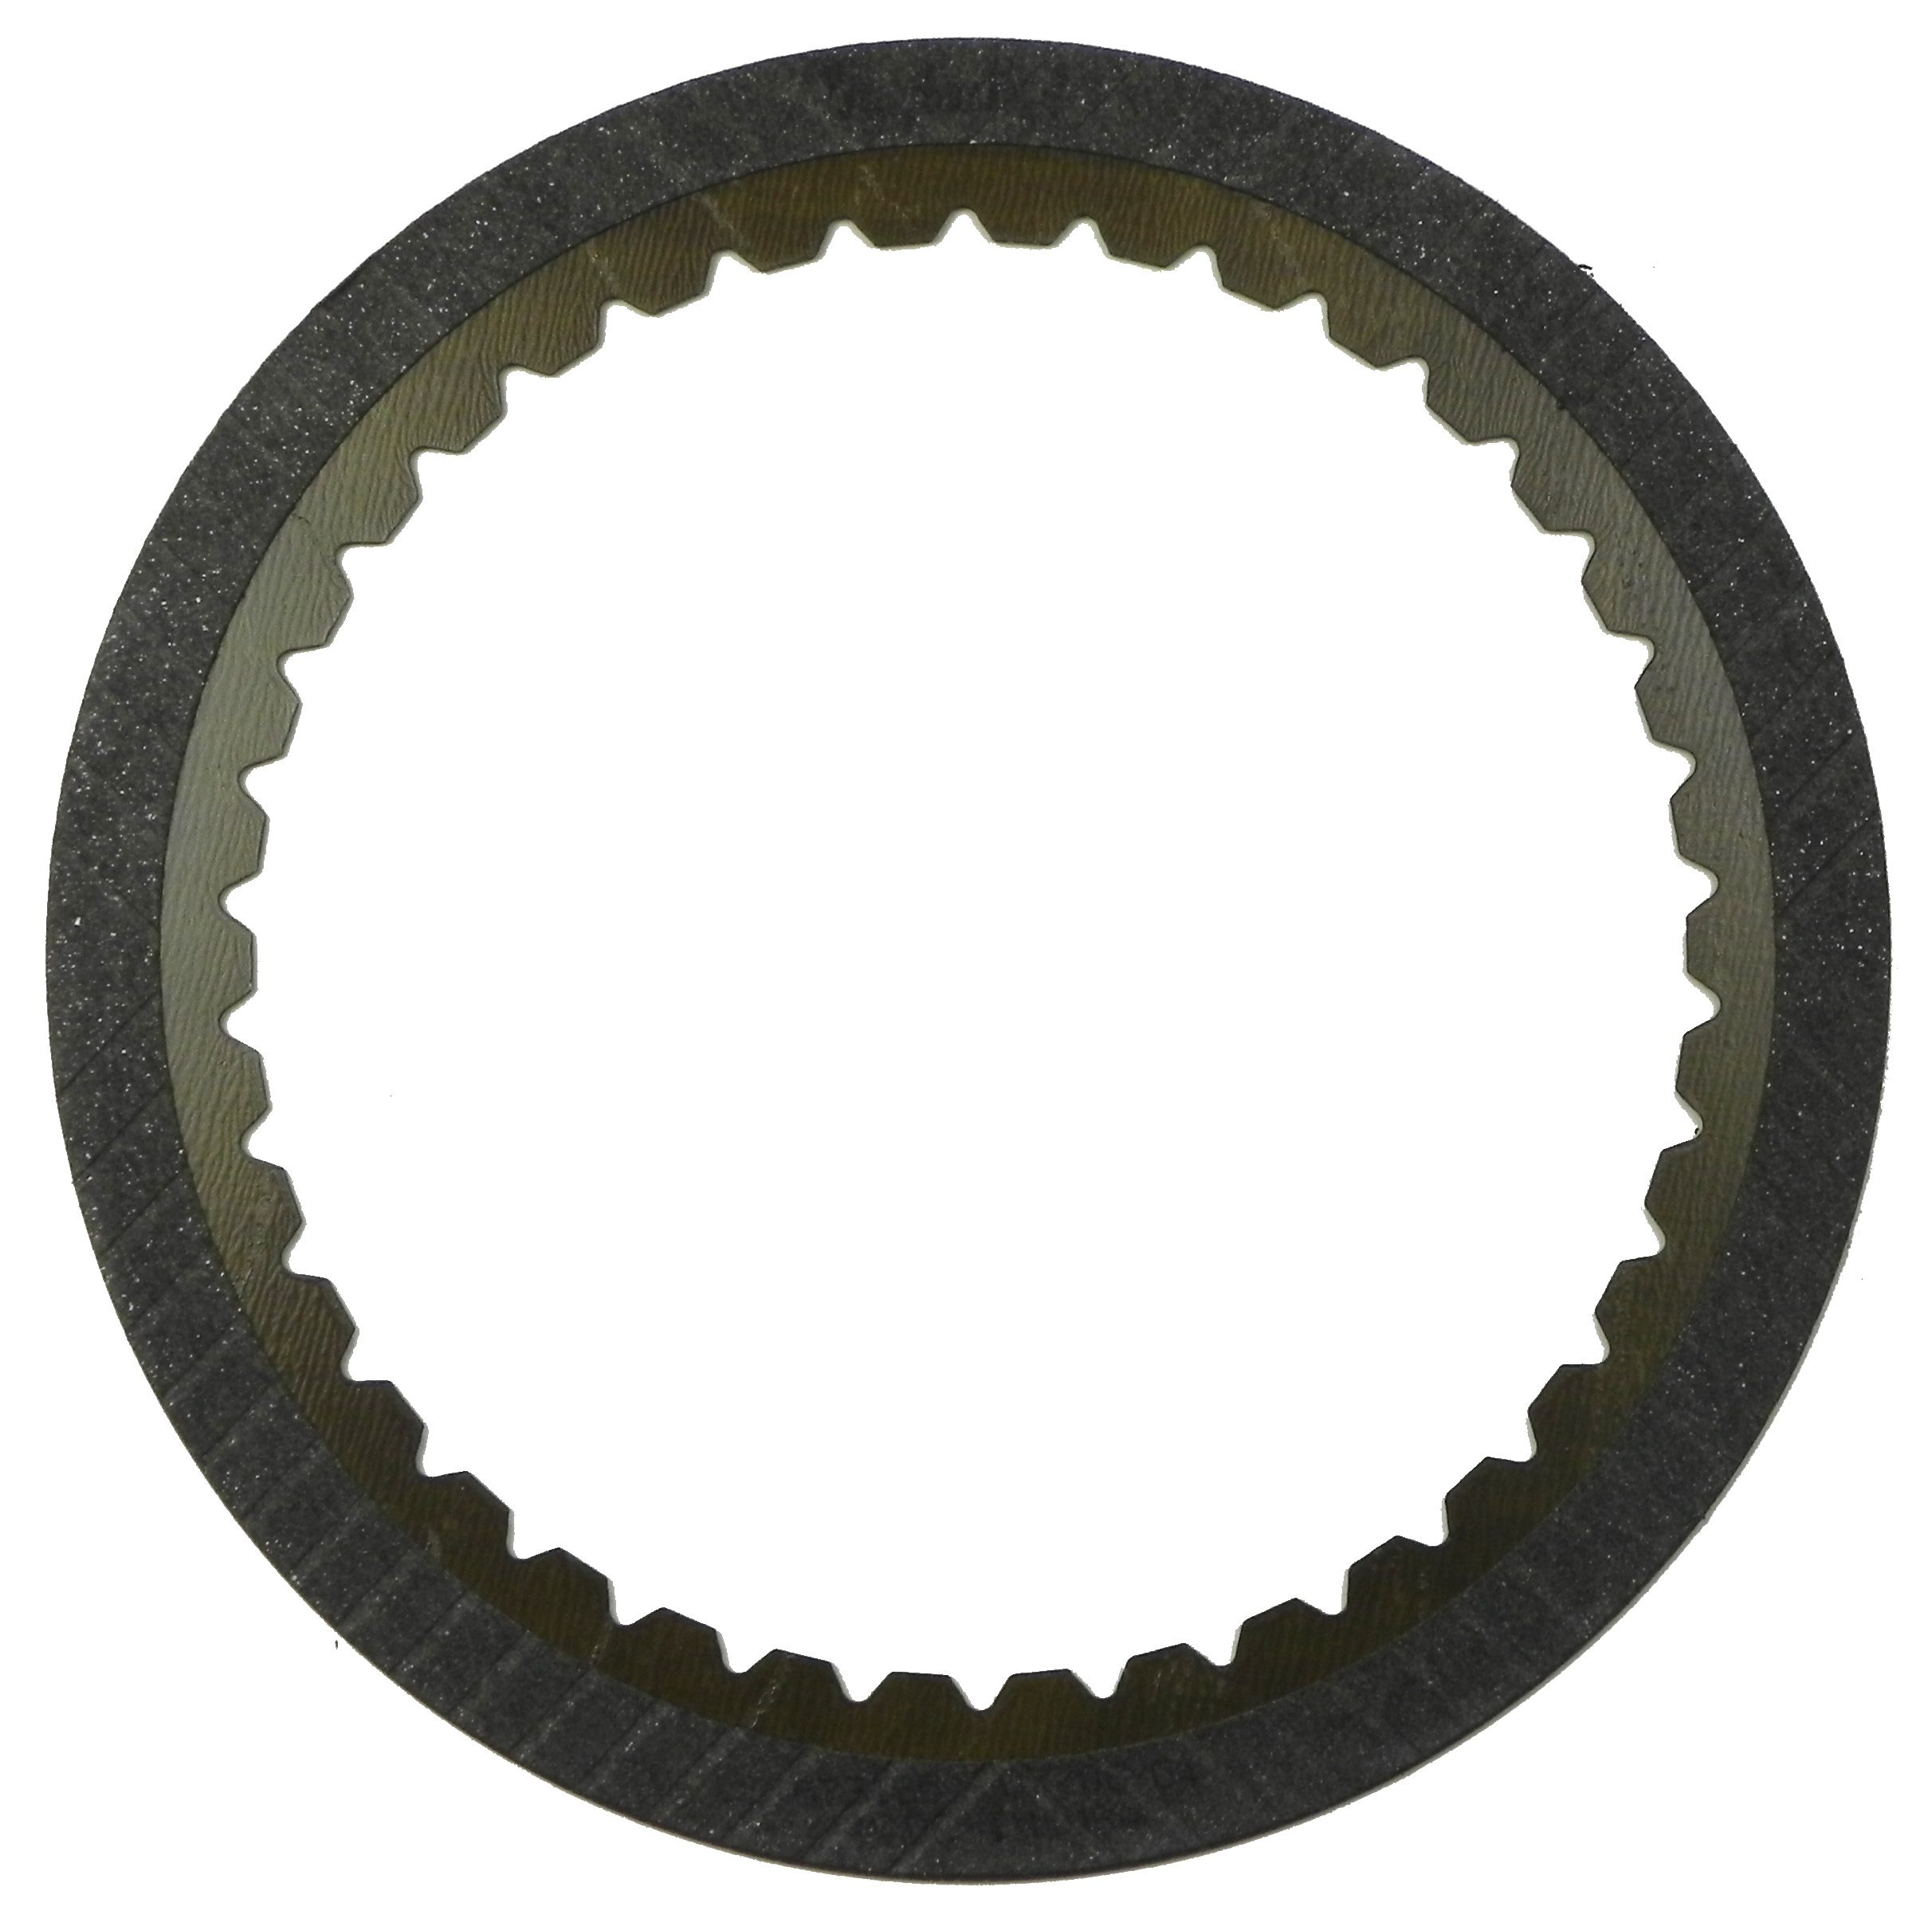 R573125 | 1998-1998 Friction Clutch Plate High Energy Reverse High Energy